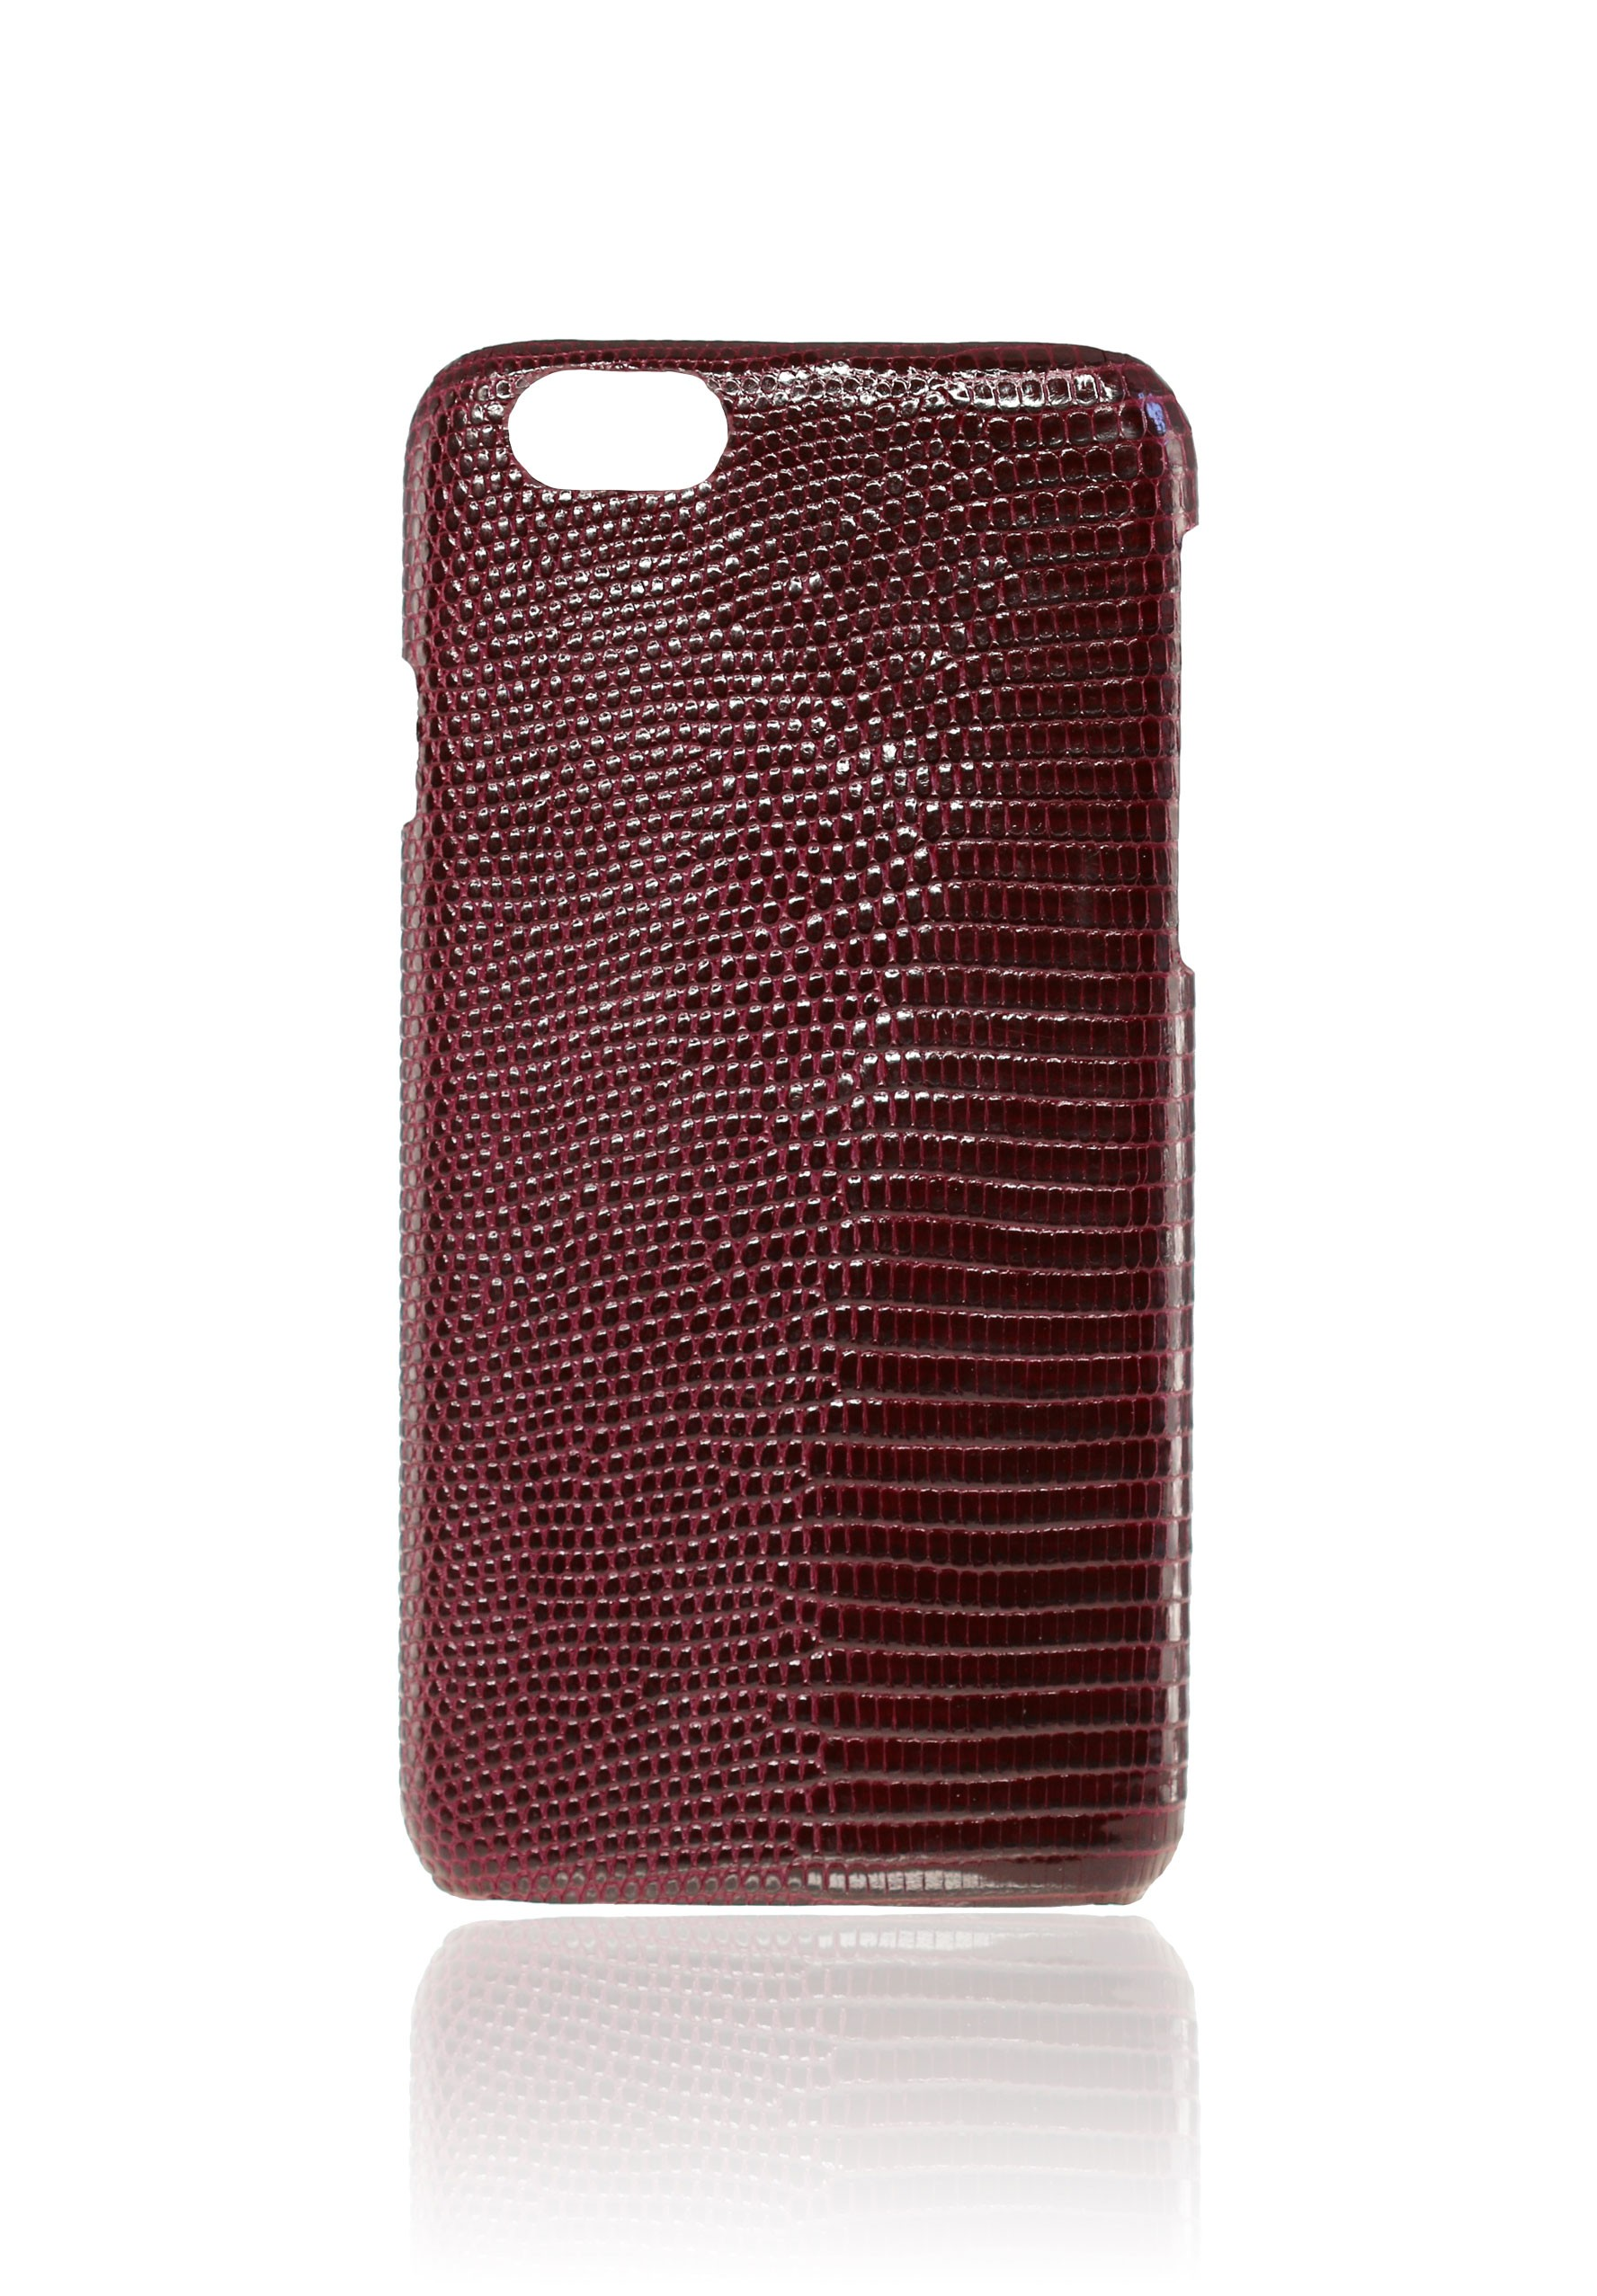 custodia iphone 6s bordeaux